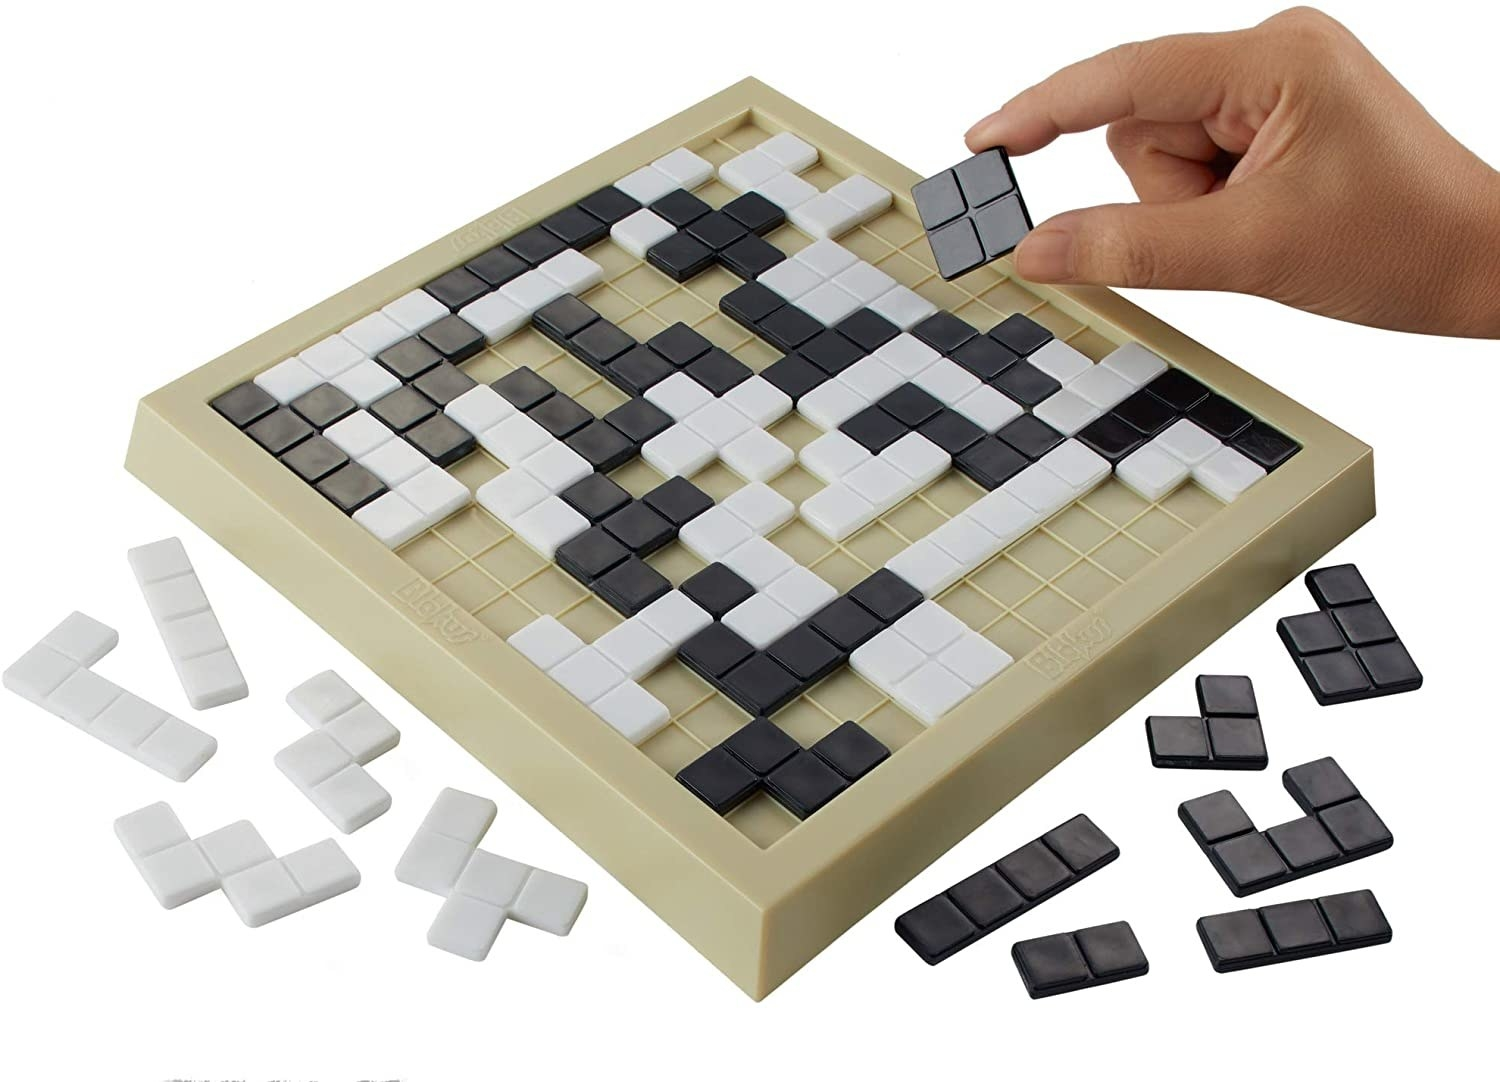 The Blokus board with white and black geometric tiles on it